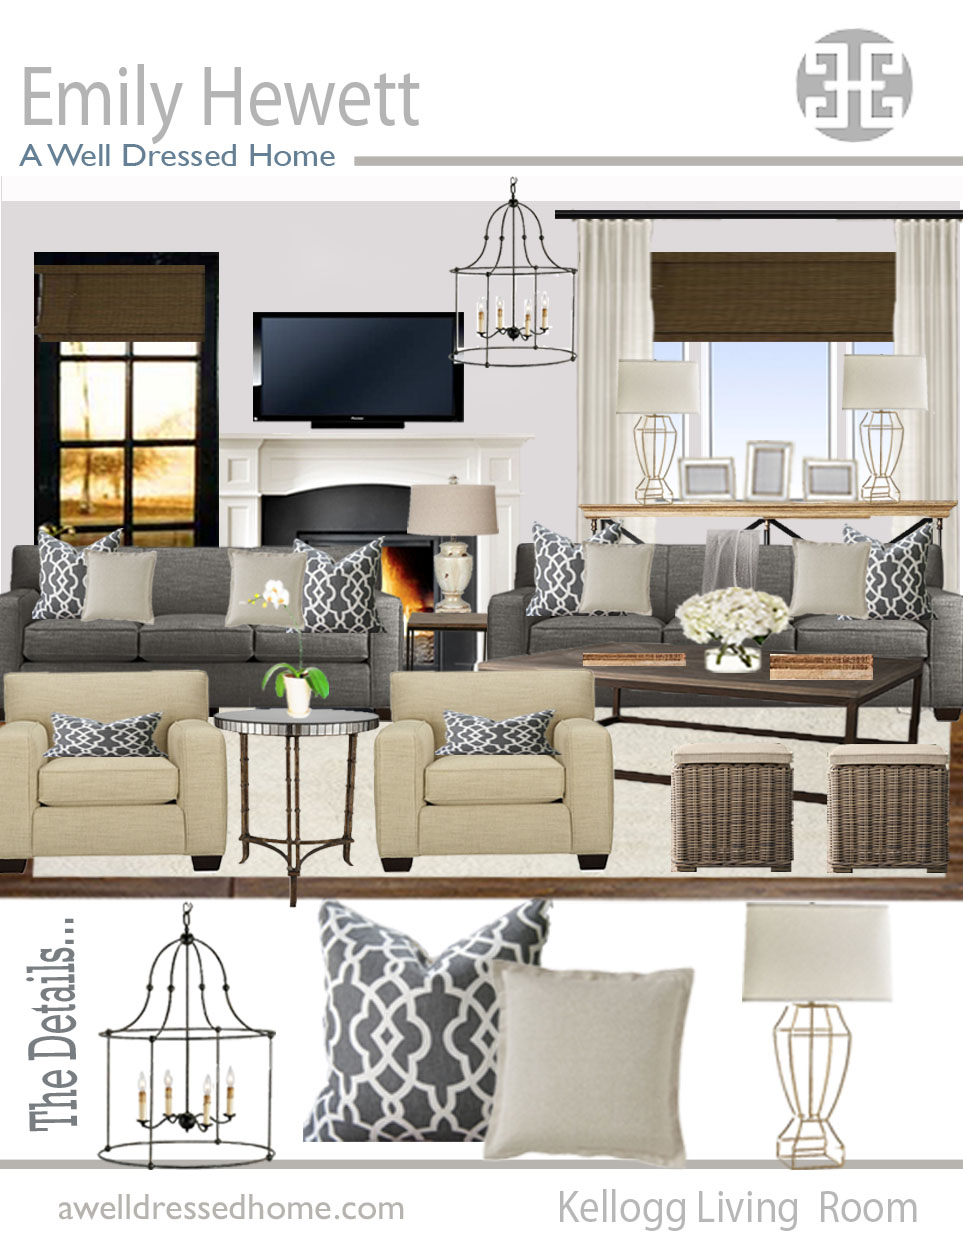 AWDH ODB Kellogg Living Room Online Design Board by AWDH